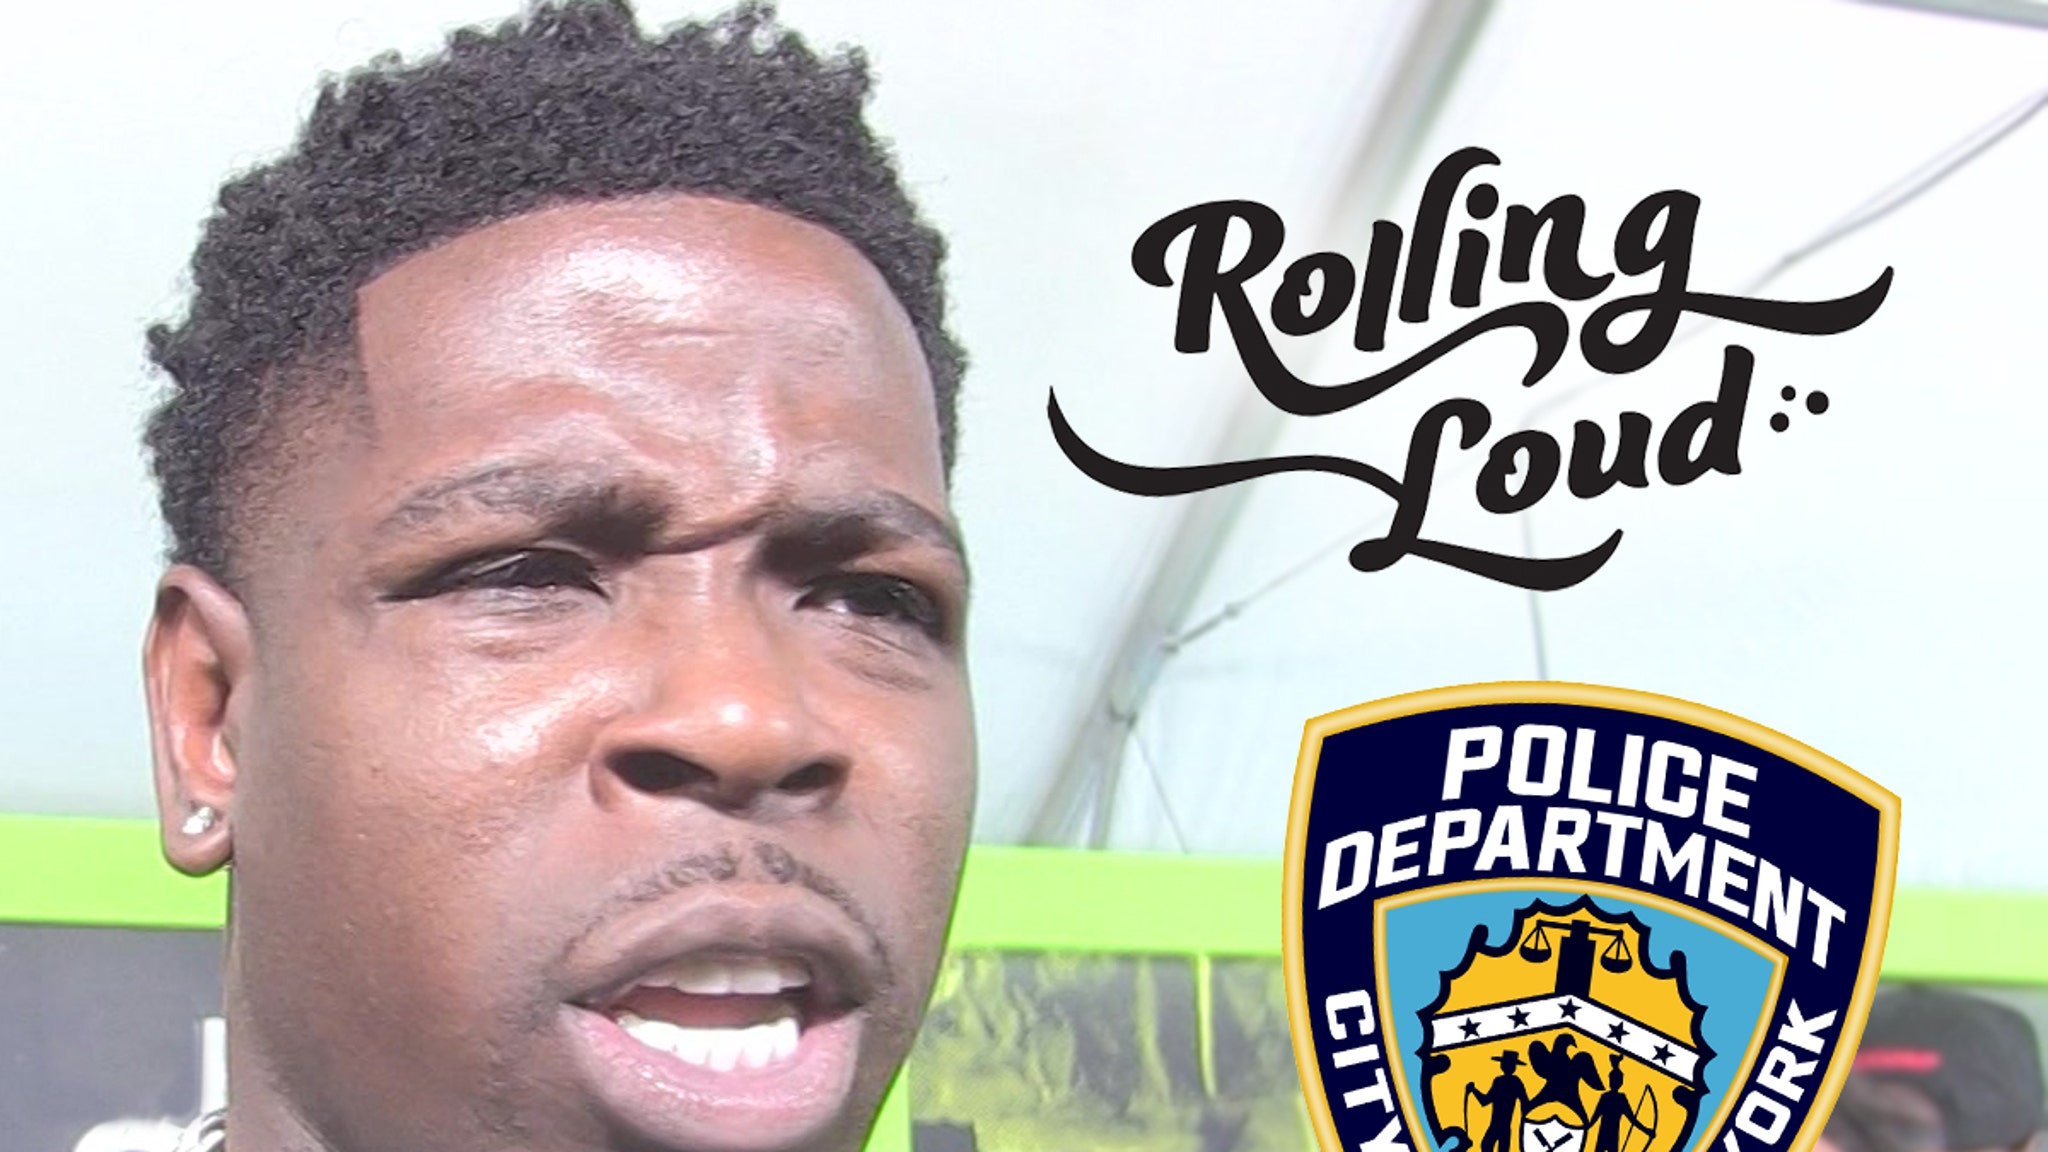 Casanova & Other Rappers Ousted from Rolling Loud After NYPD Request - TMZ thumbnail